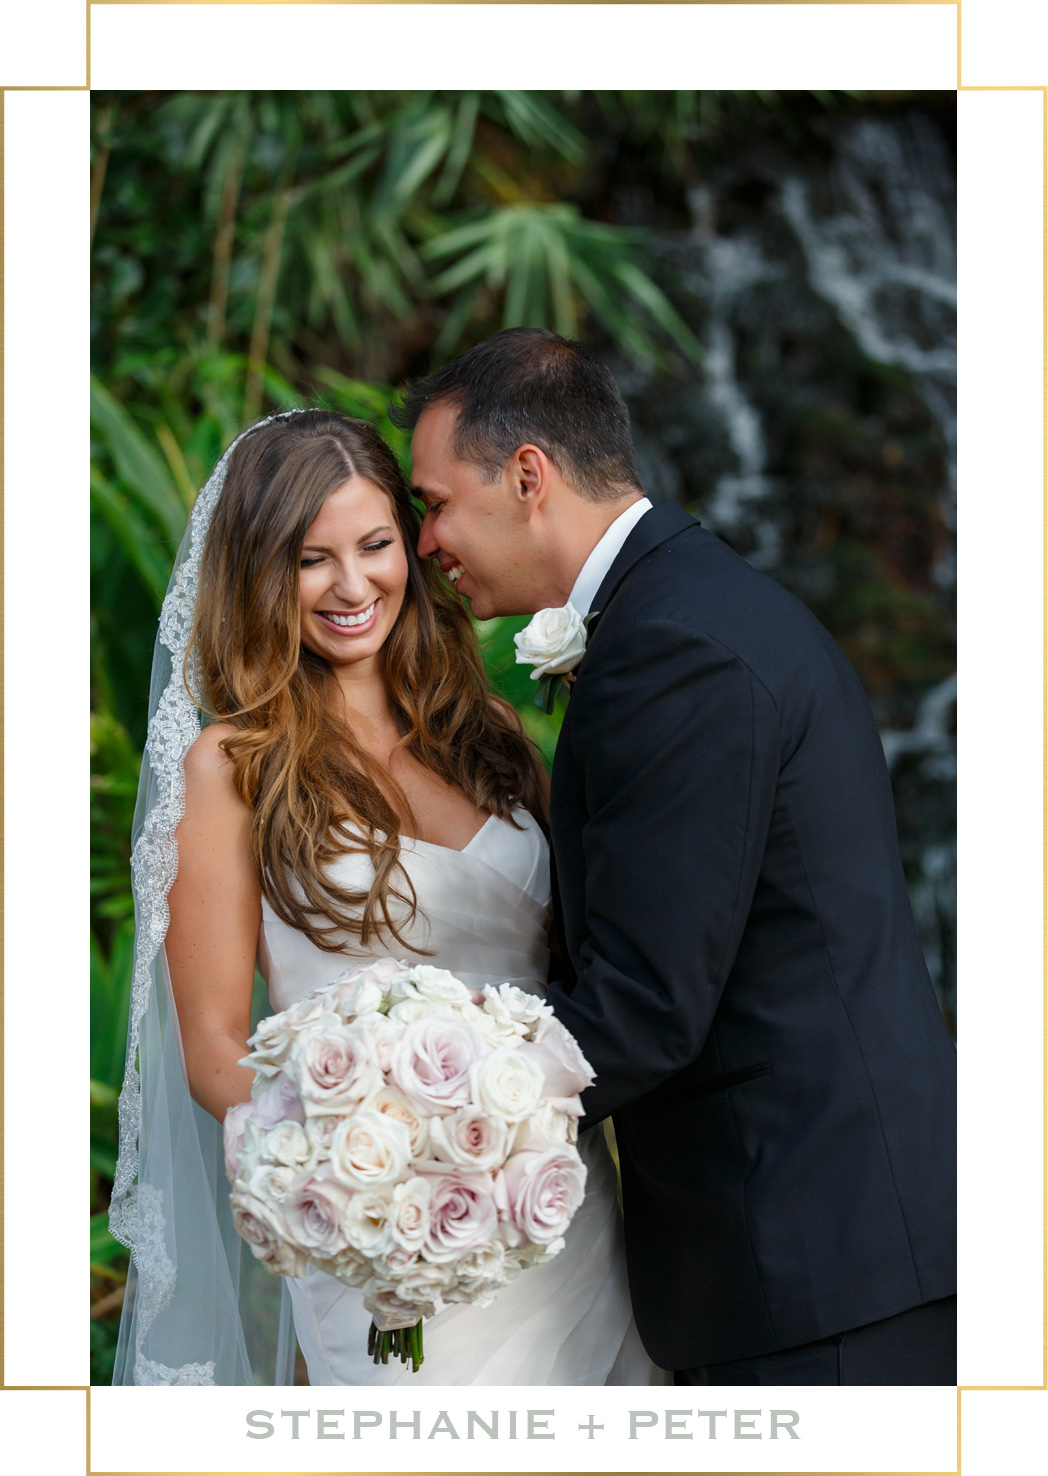 Lisa Stoner Events | Orlando Florida Wedding Planner and Designer